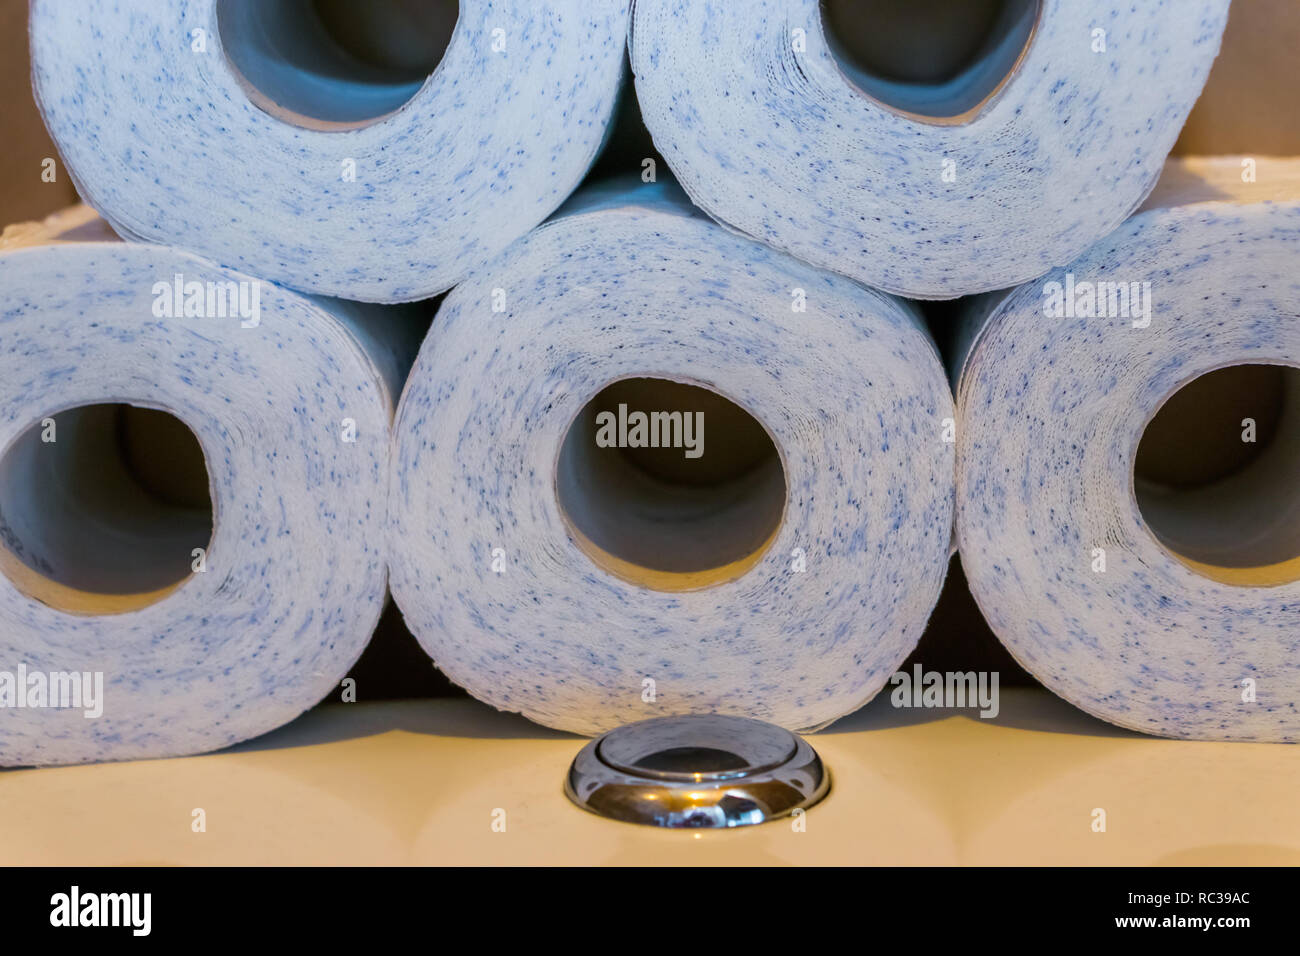 piled stack of toilet paper laying on the water closet, household products, bathroom background - Stock Image